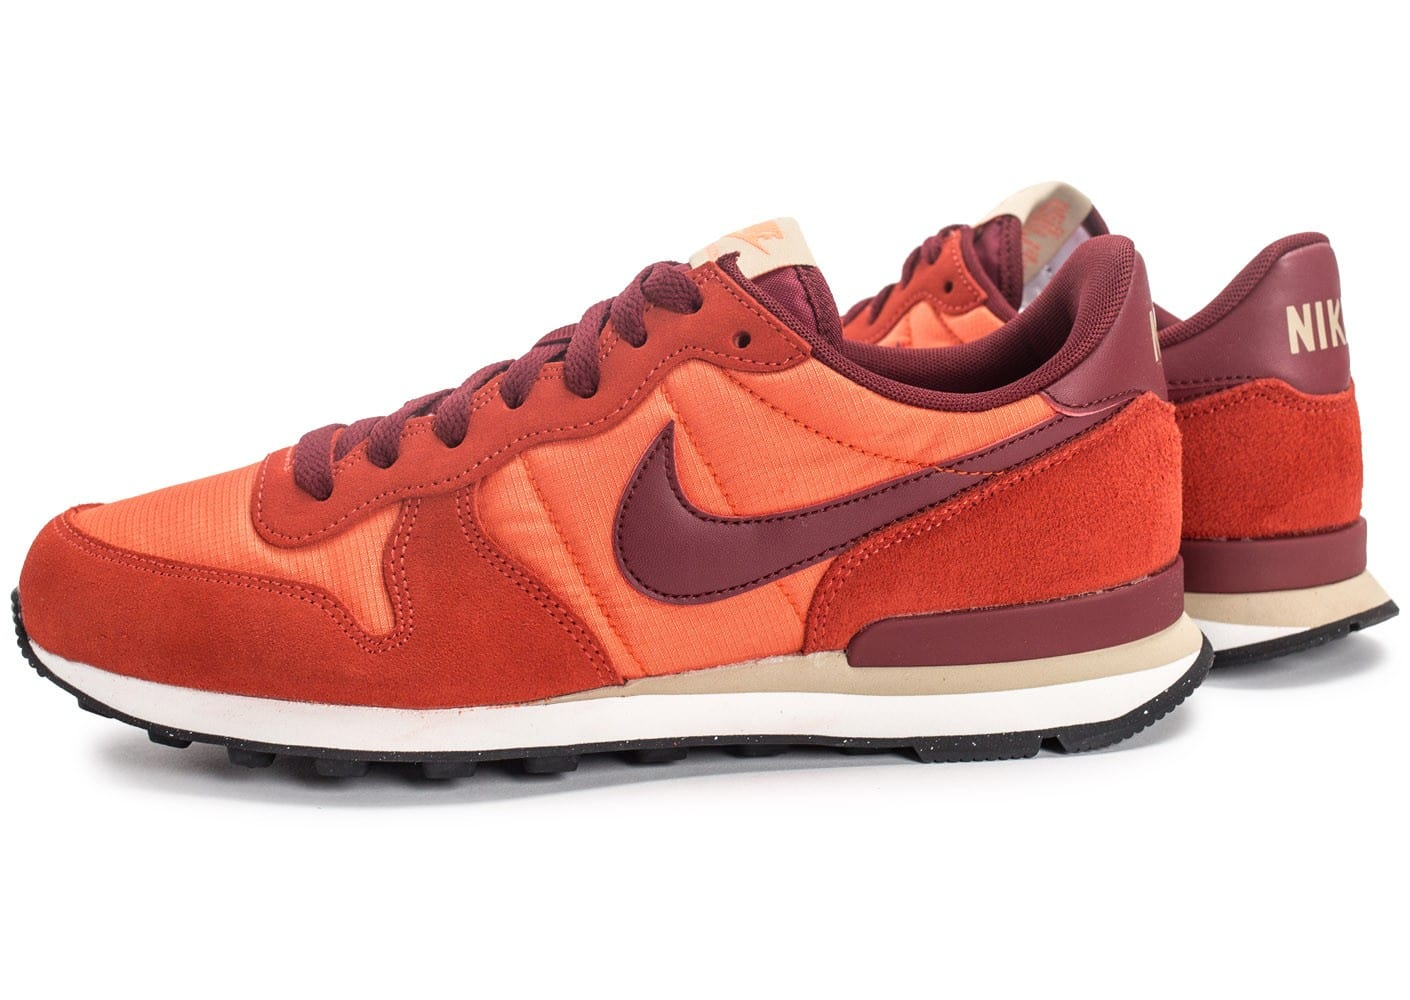 Baskets Chausport Homme Internationalist Chaussures Nike Orange 8OZwnPkXN0